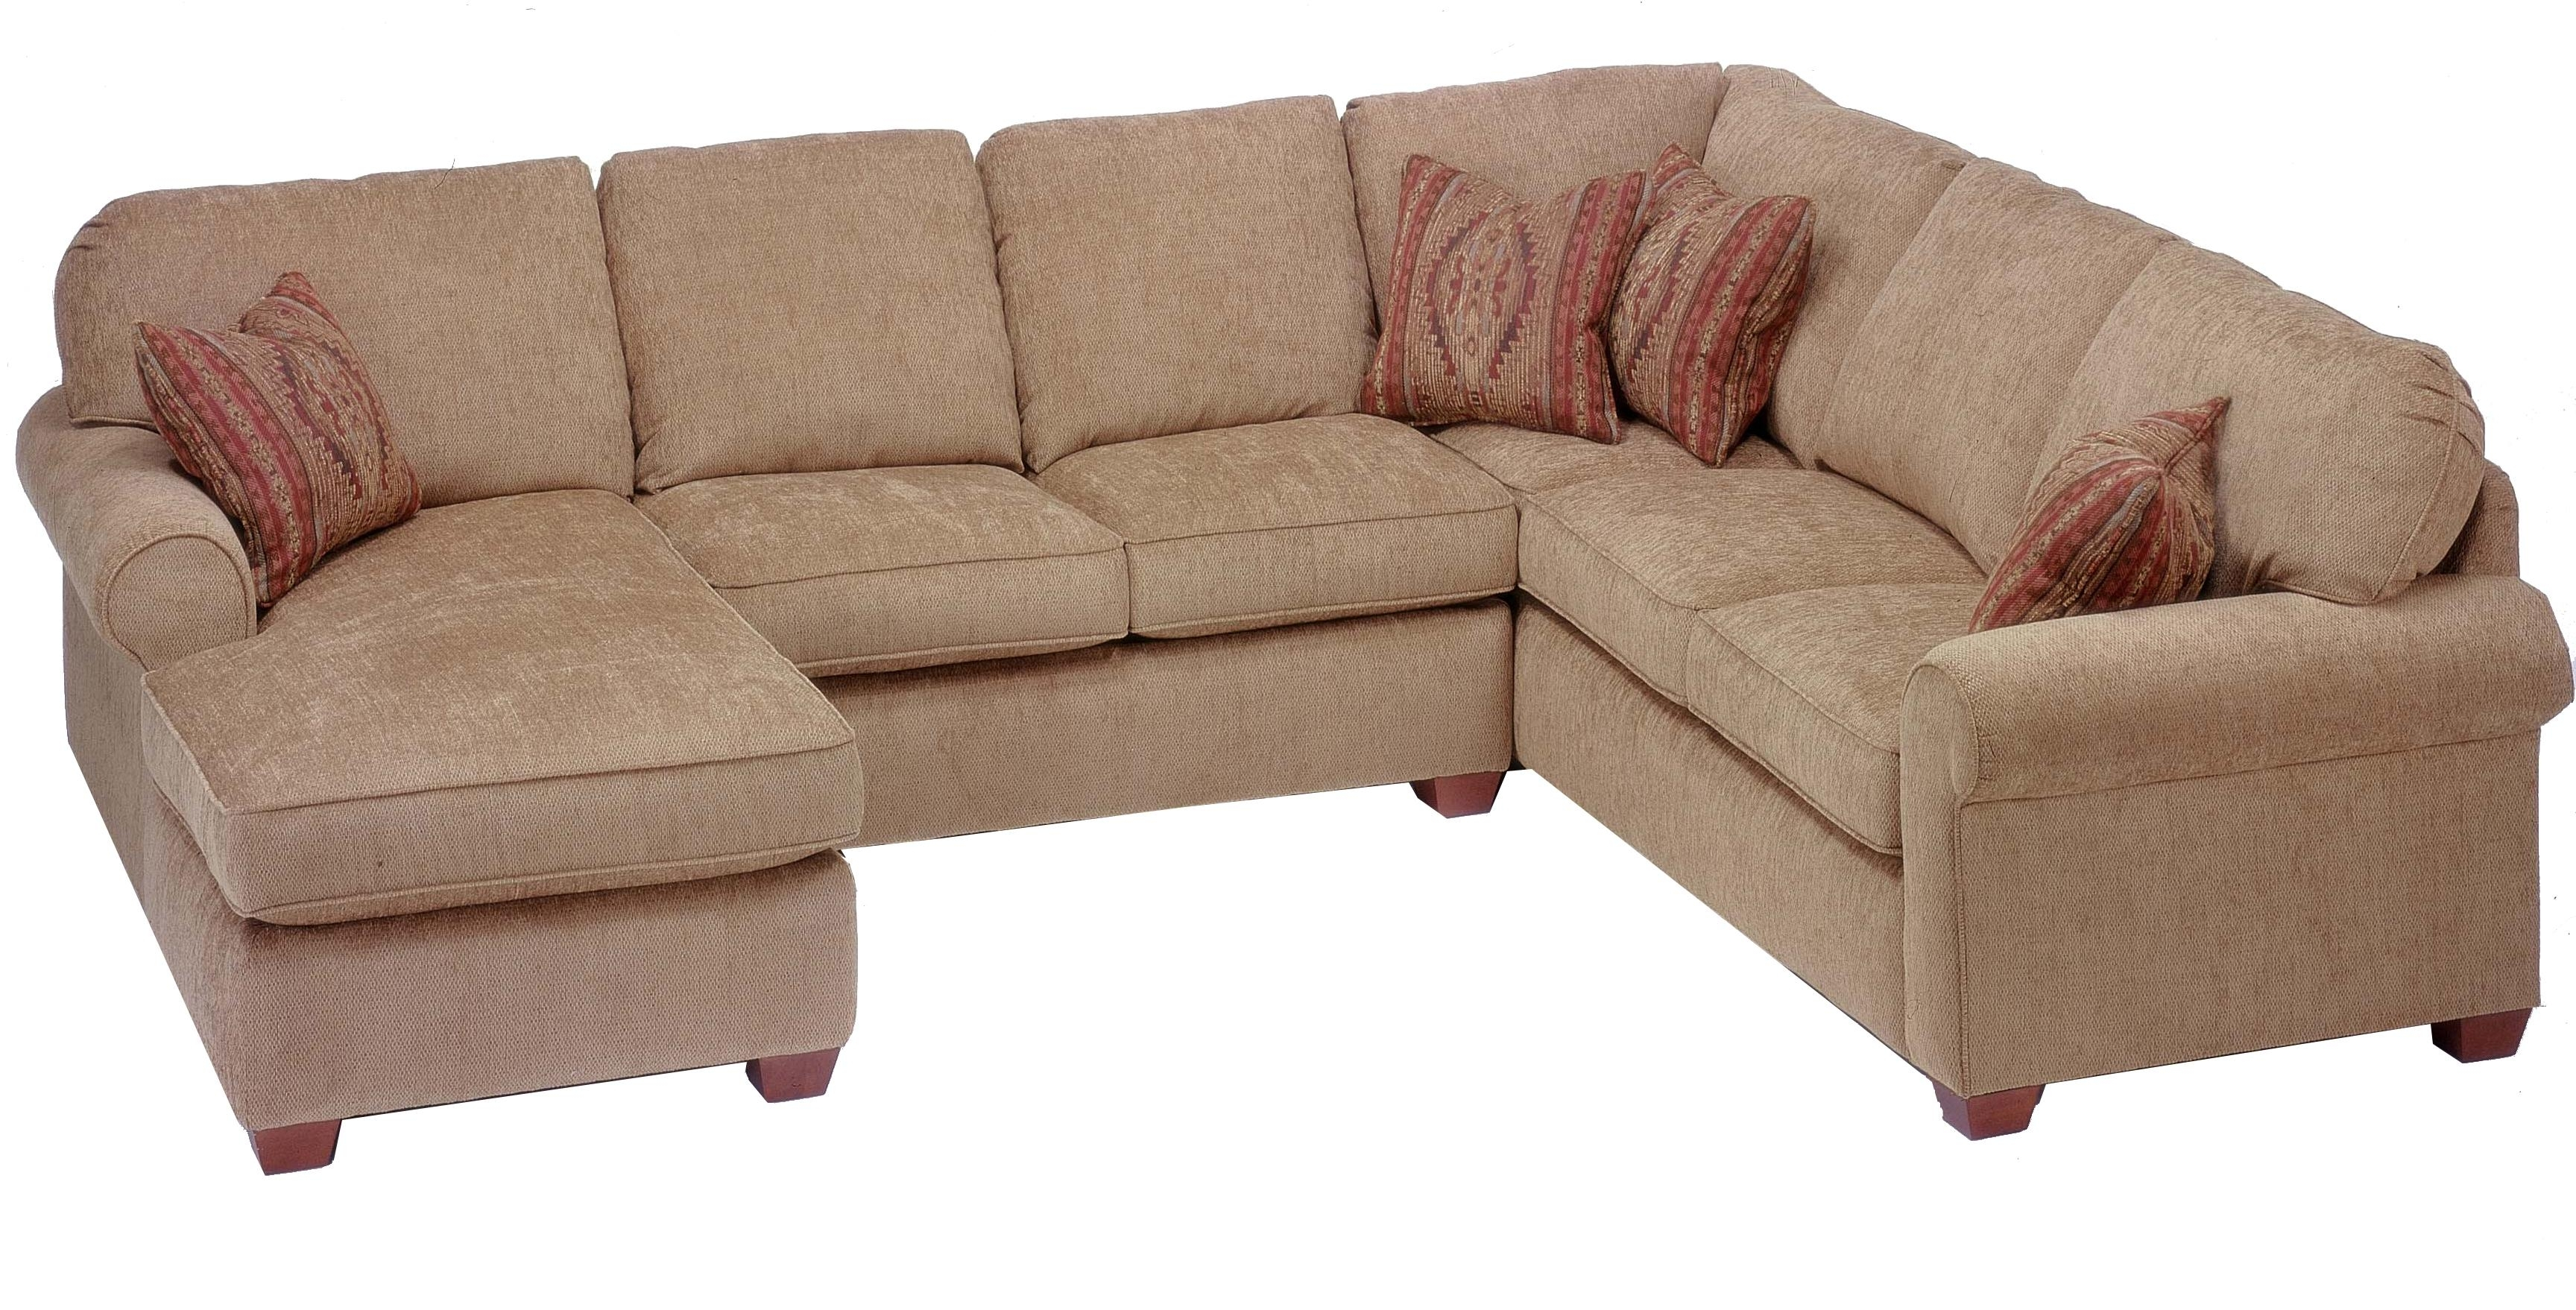 Flexsteel Thornton 3 Piece Sectional With Chaise – Ahfa – Sofa Regarding Blaine 3 Piece Sectionals (View 2 of 25)